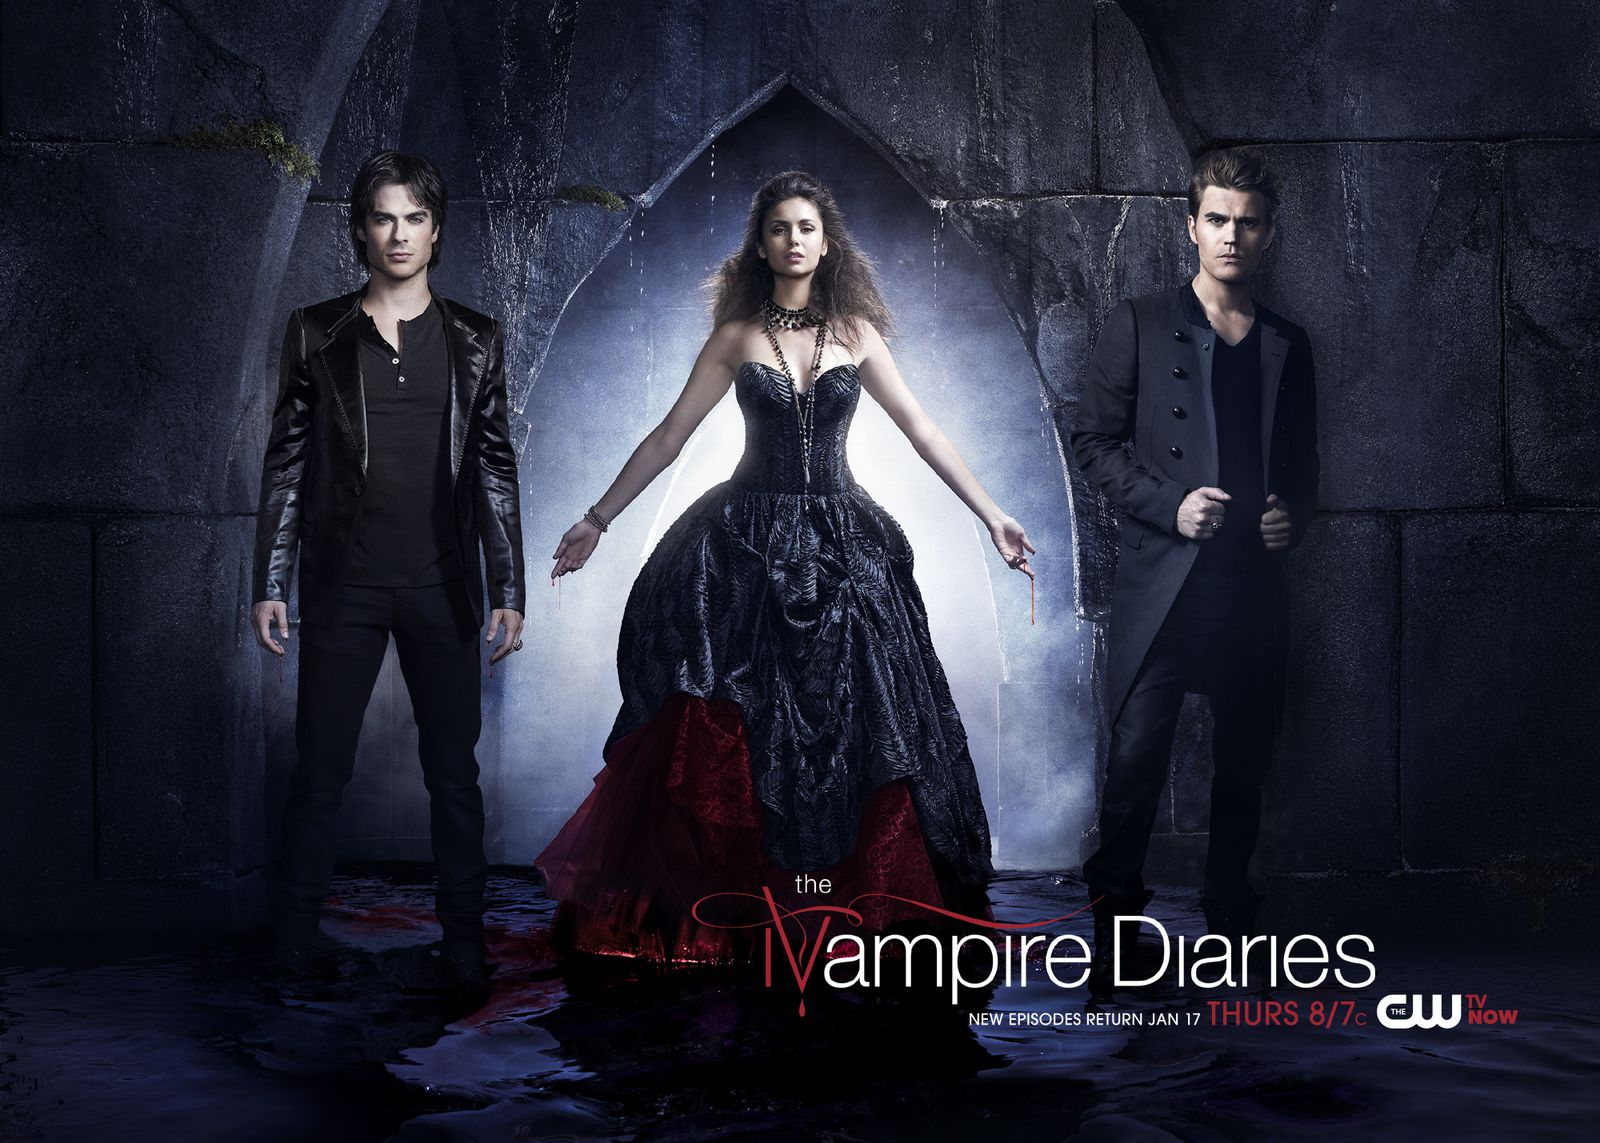 'Vampire Diaries': Sneak Peek zu Staffel 5